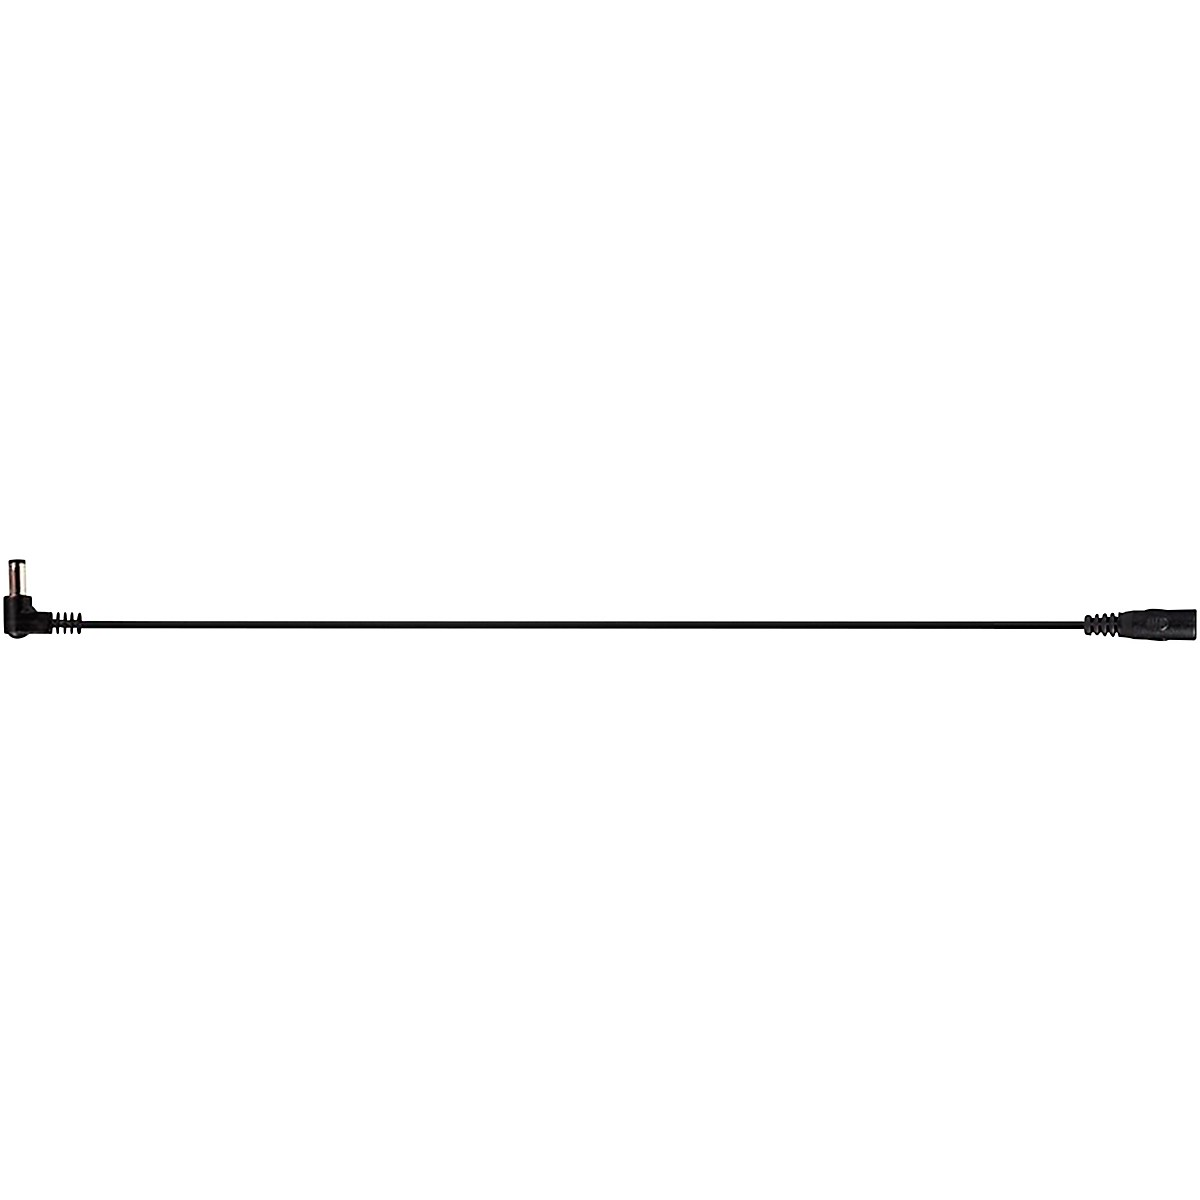 Godlyke Power-All Cable-Black/R Right-Angle Extension Cable